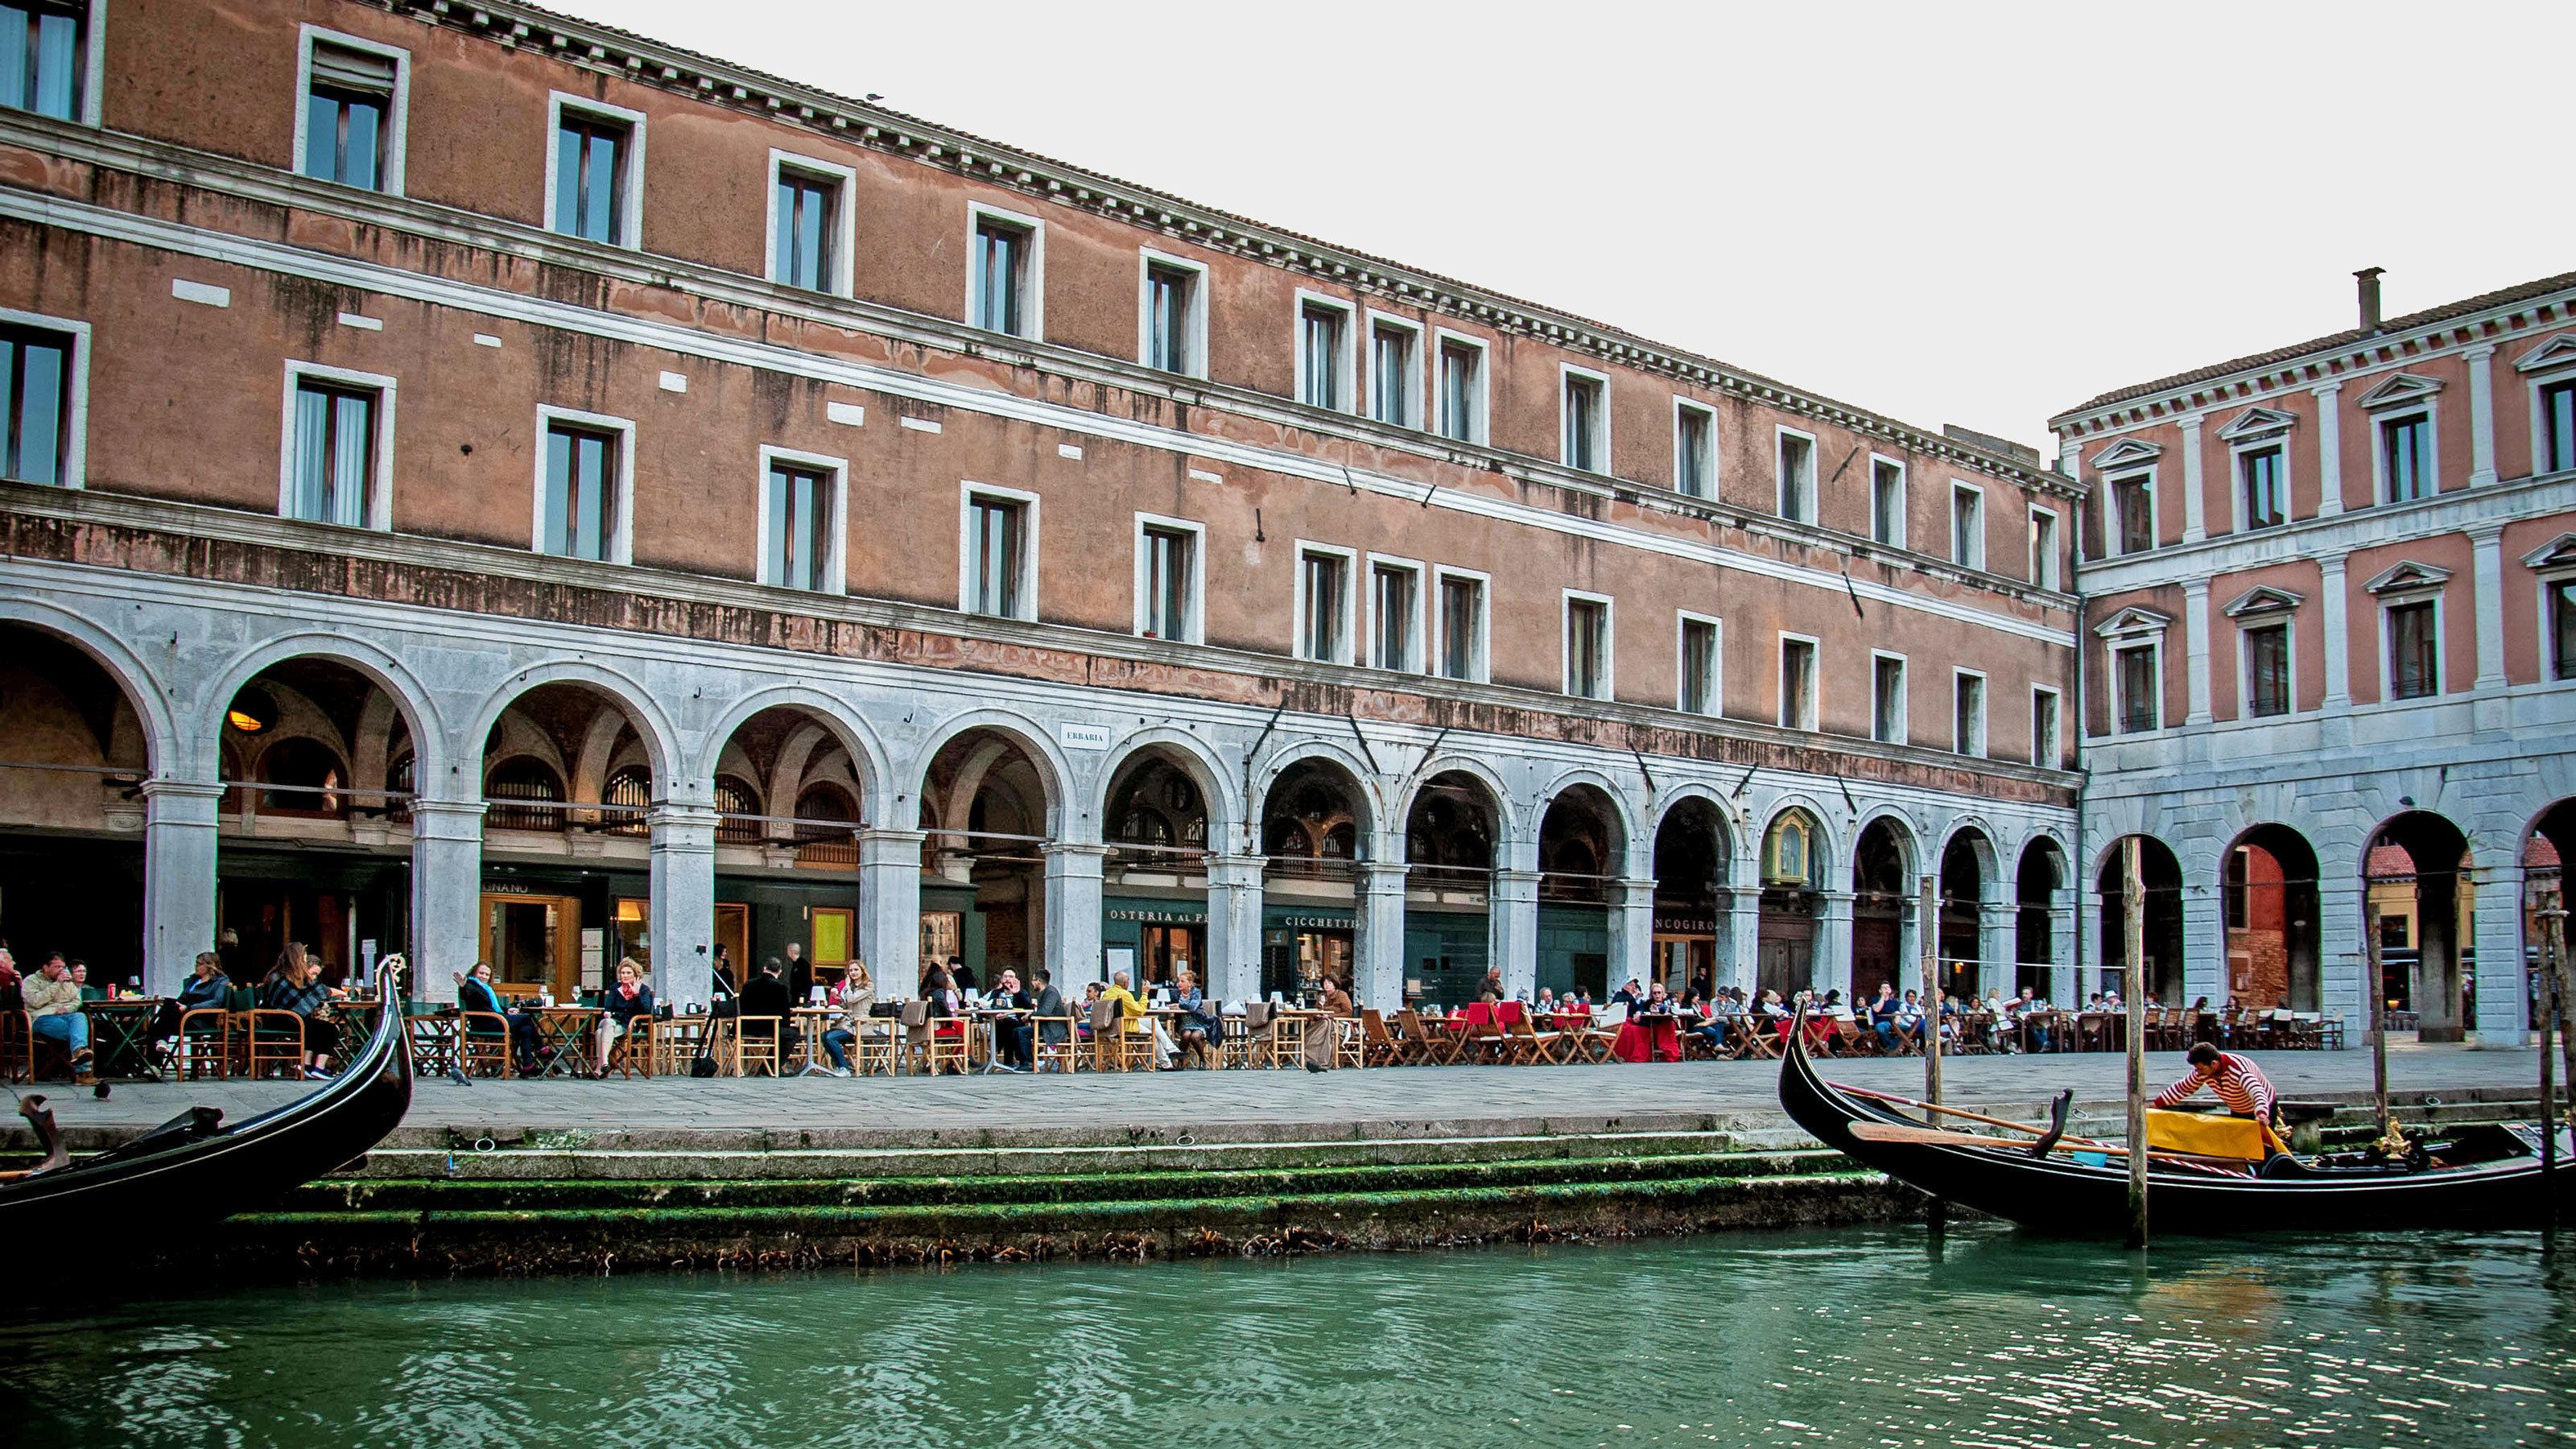 buildings lining canal in venice